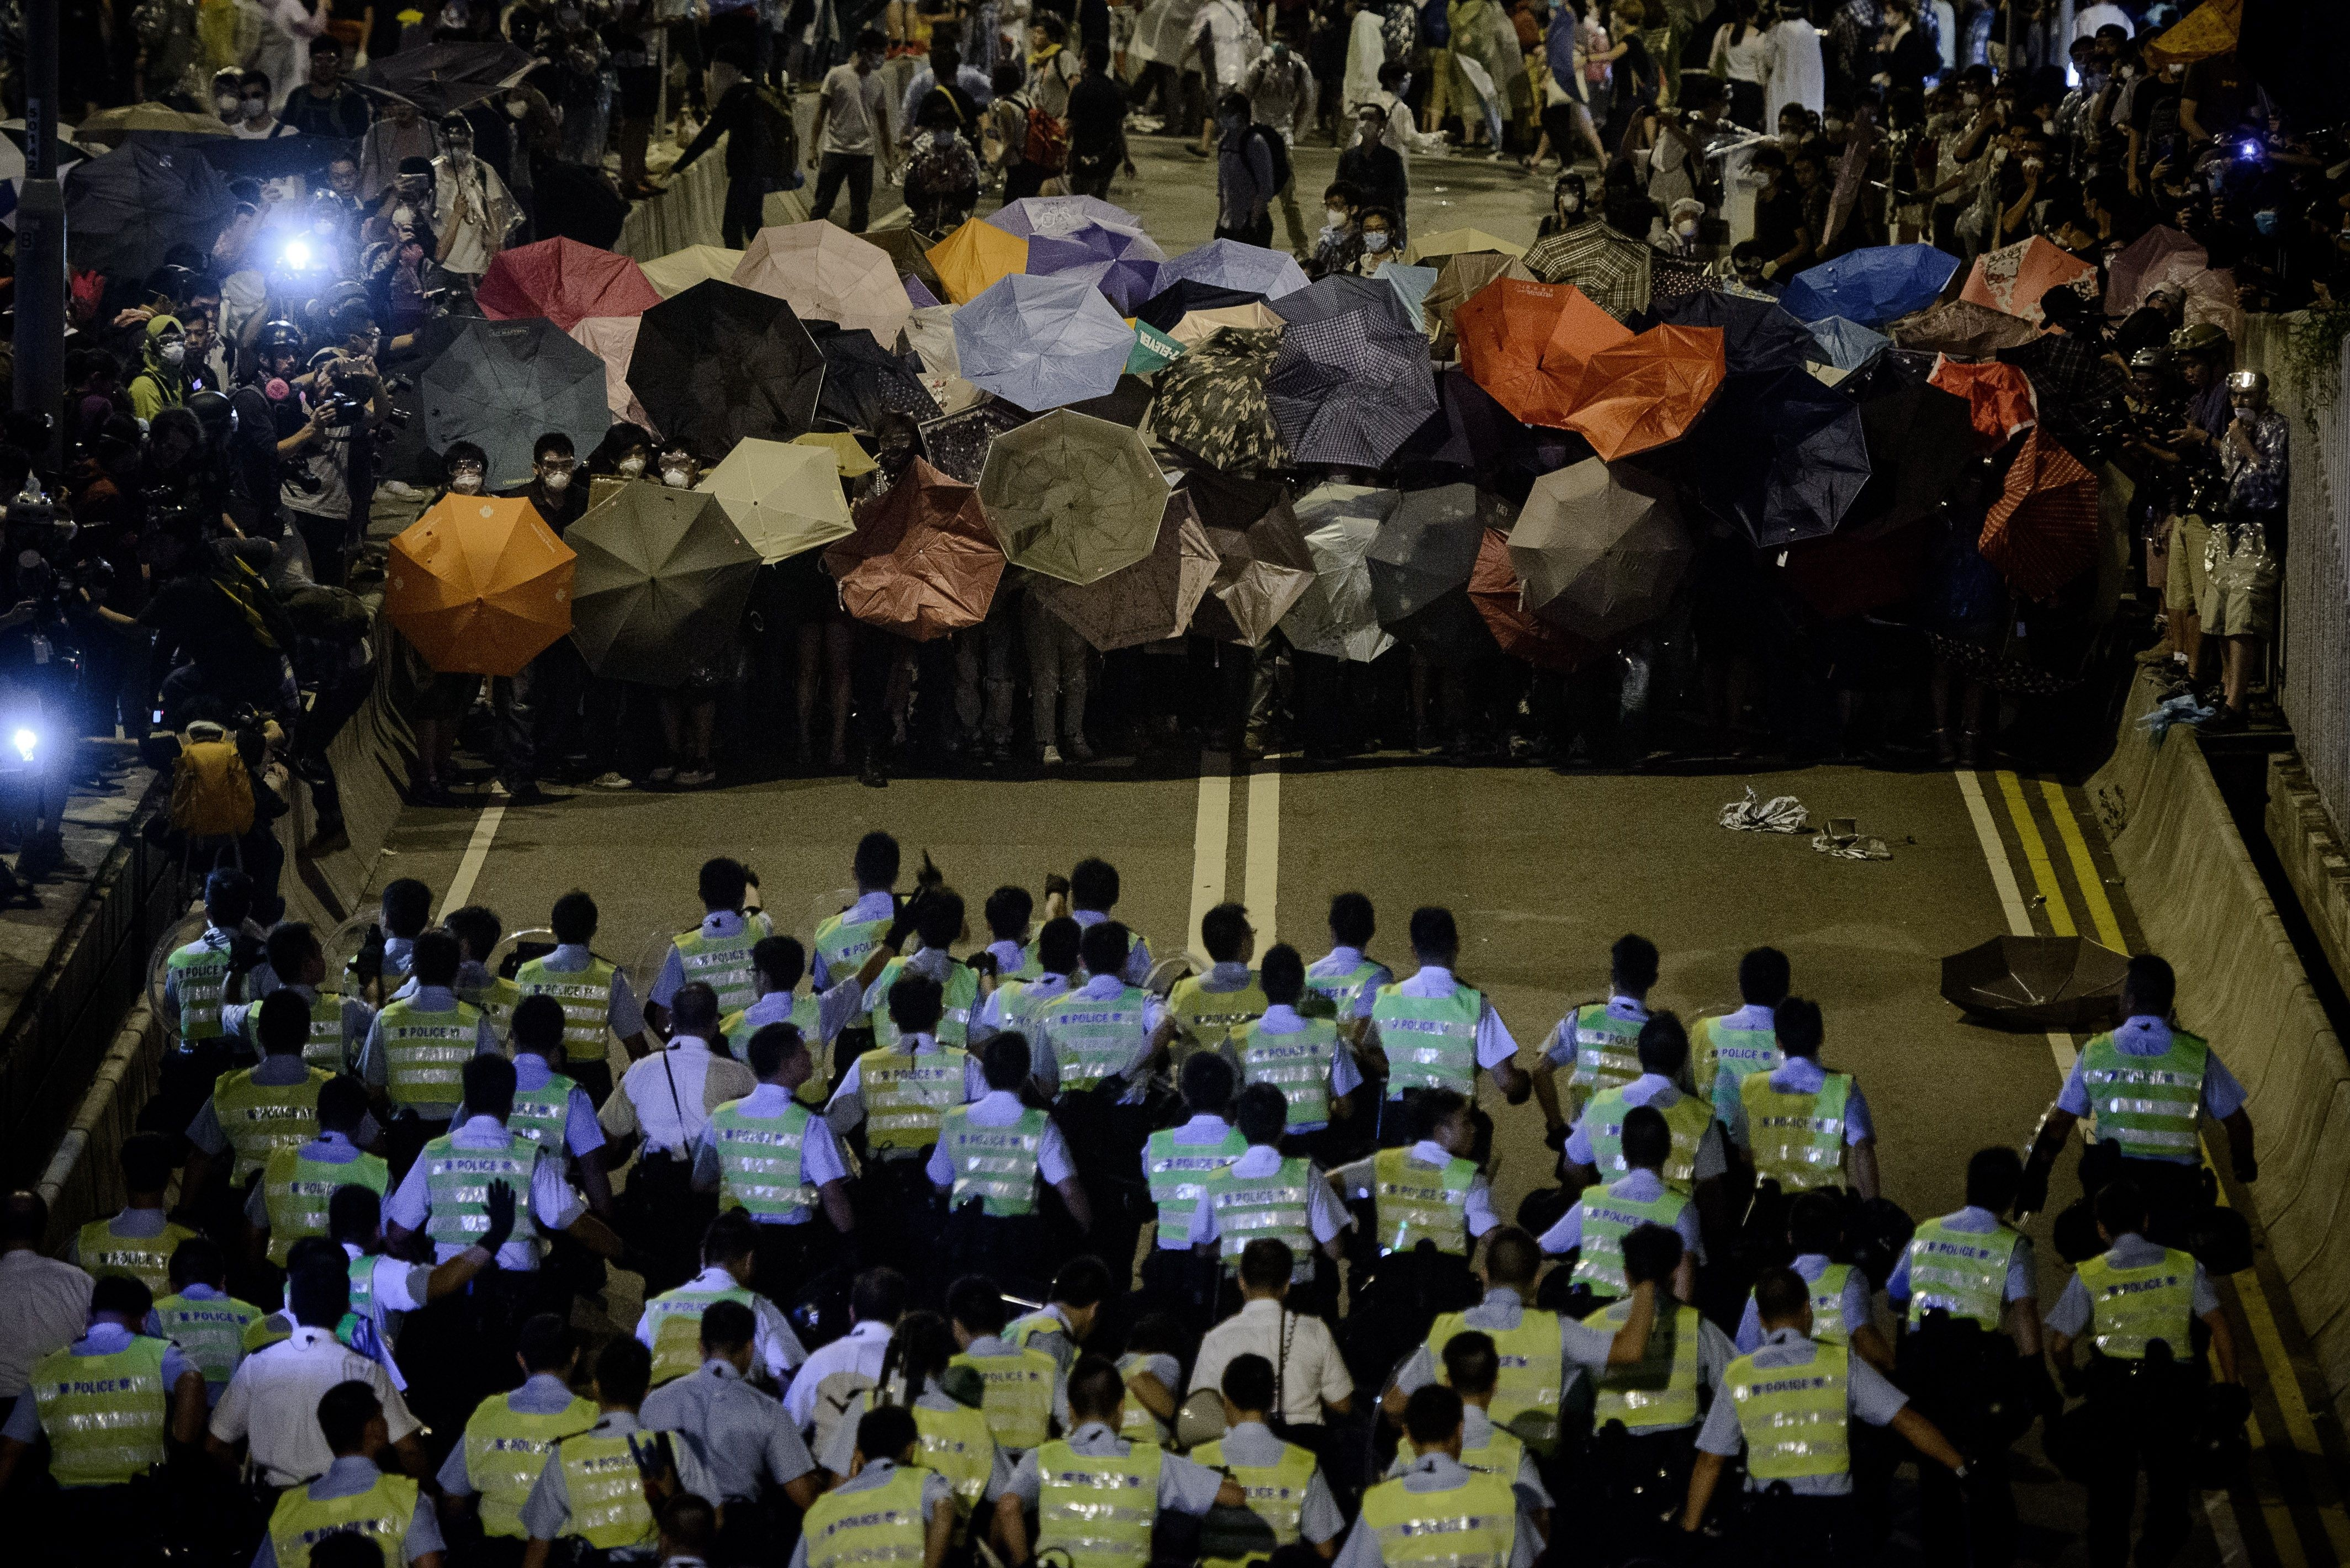 occupy central barricades